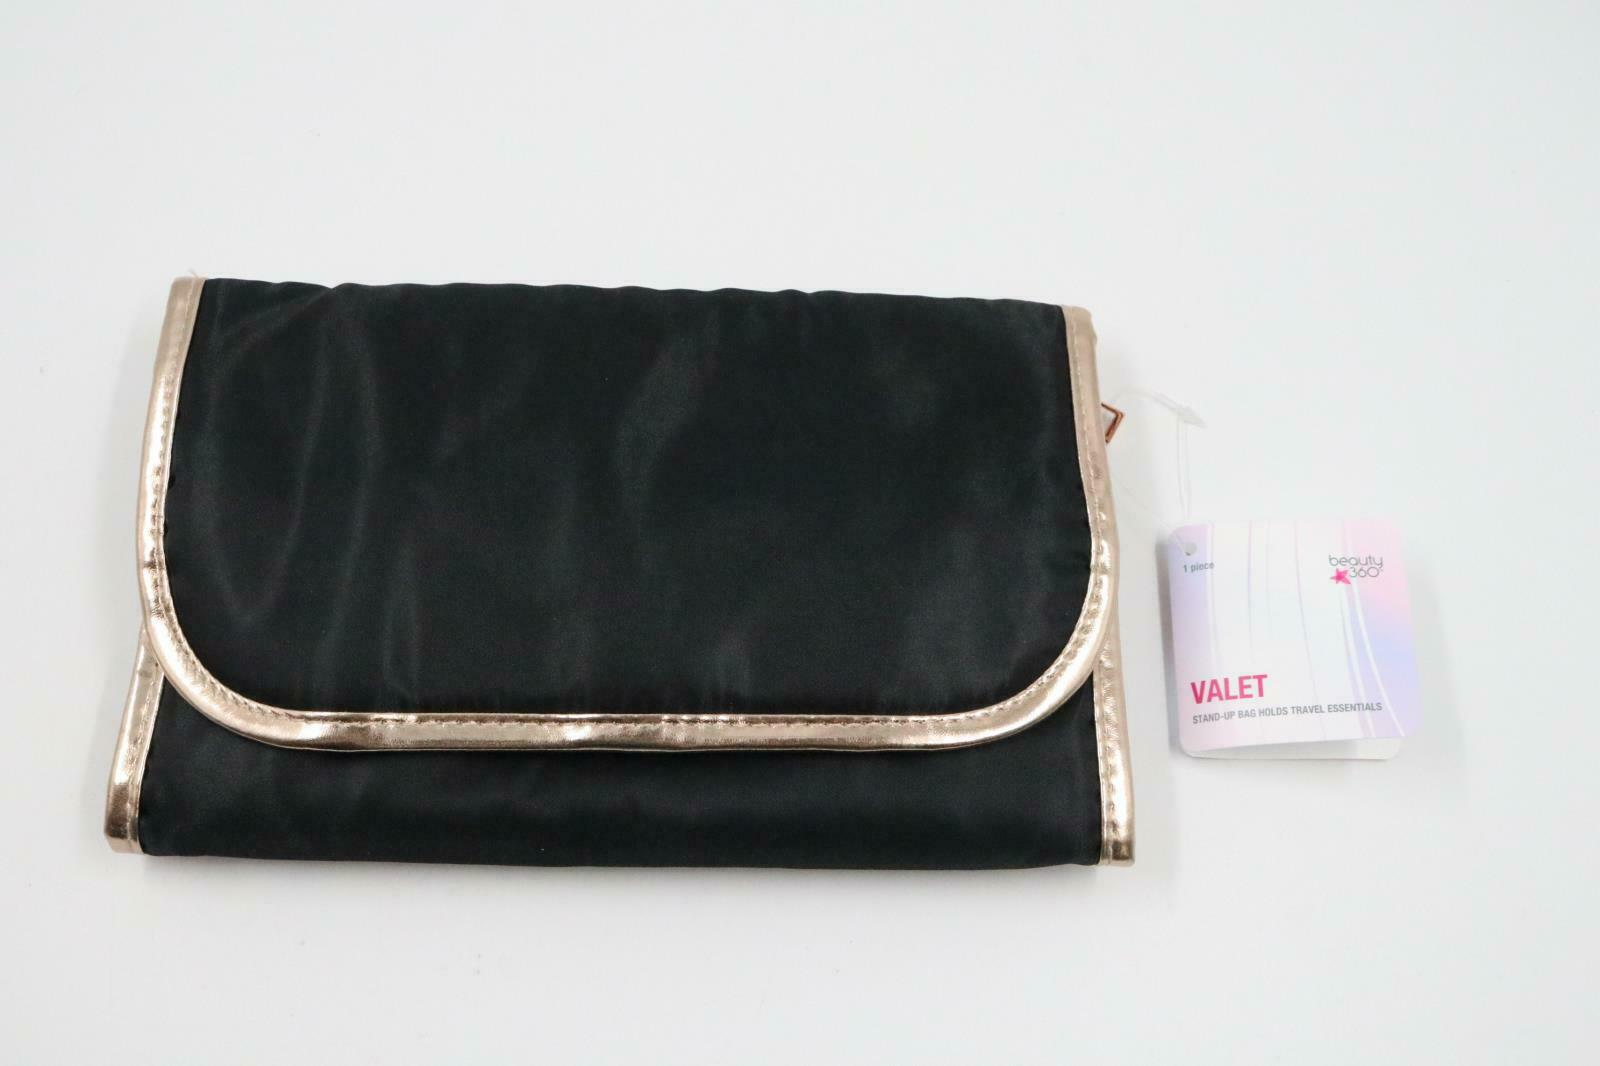 brand new Beauty 360 Travel Pouch Valet Cosmetic Organizer that is hanging Bag - s l1600